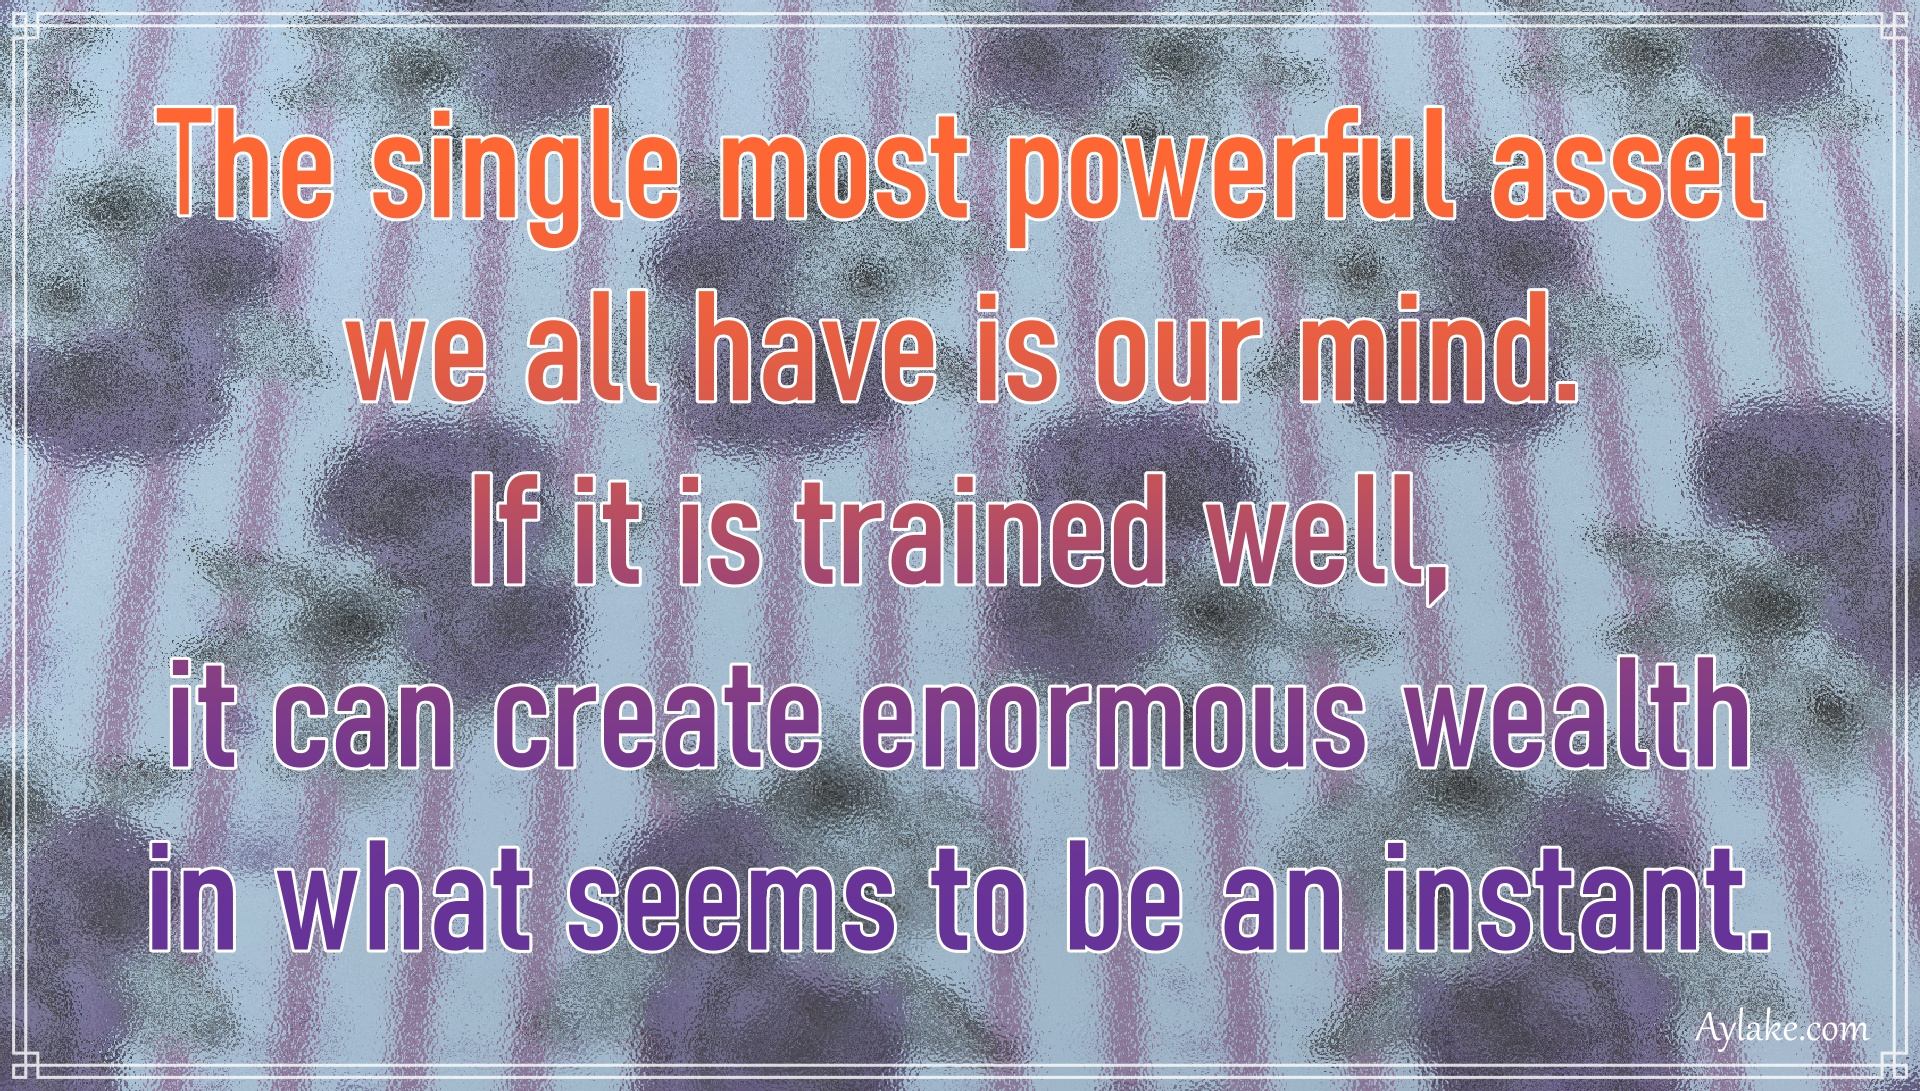 Powerful quotes The single most powerful asset we all have is our mind Aylake